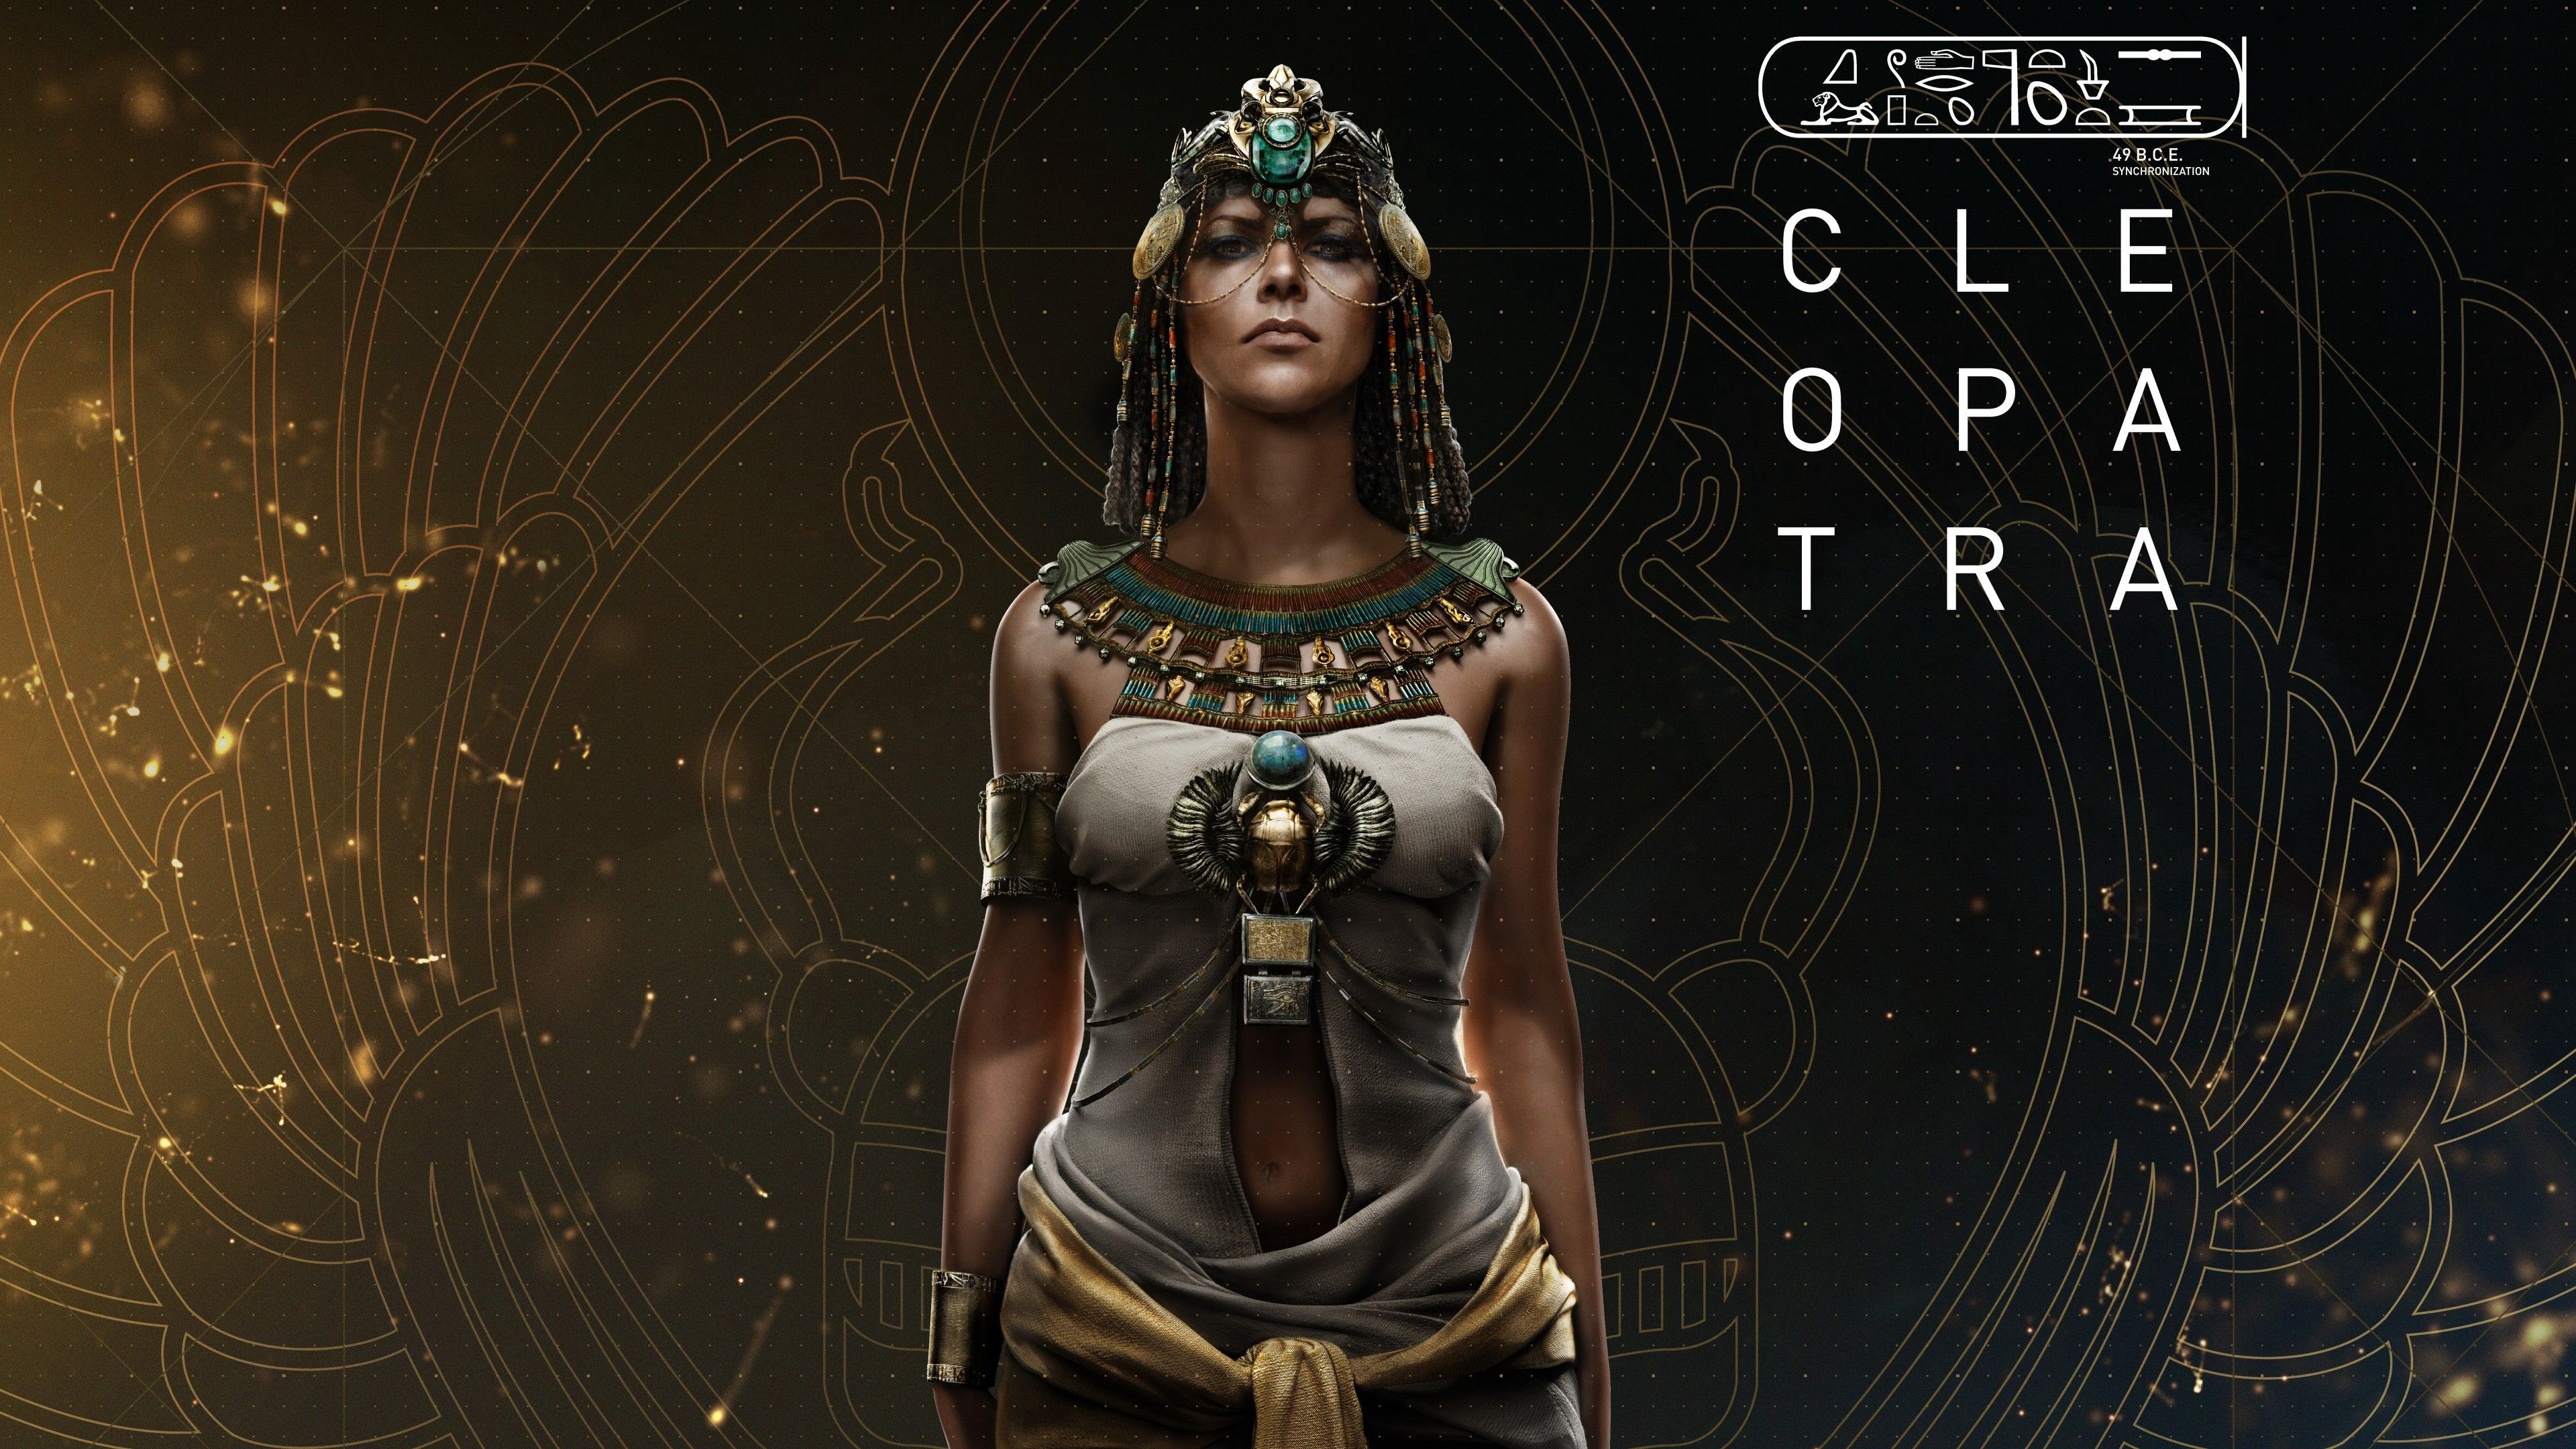 Cleopatra Assassins Creed Origins 4k Wallpaper Jignesh